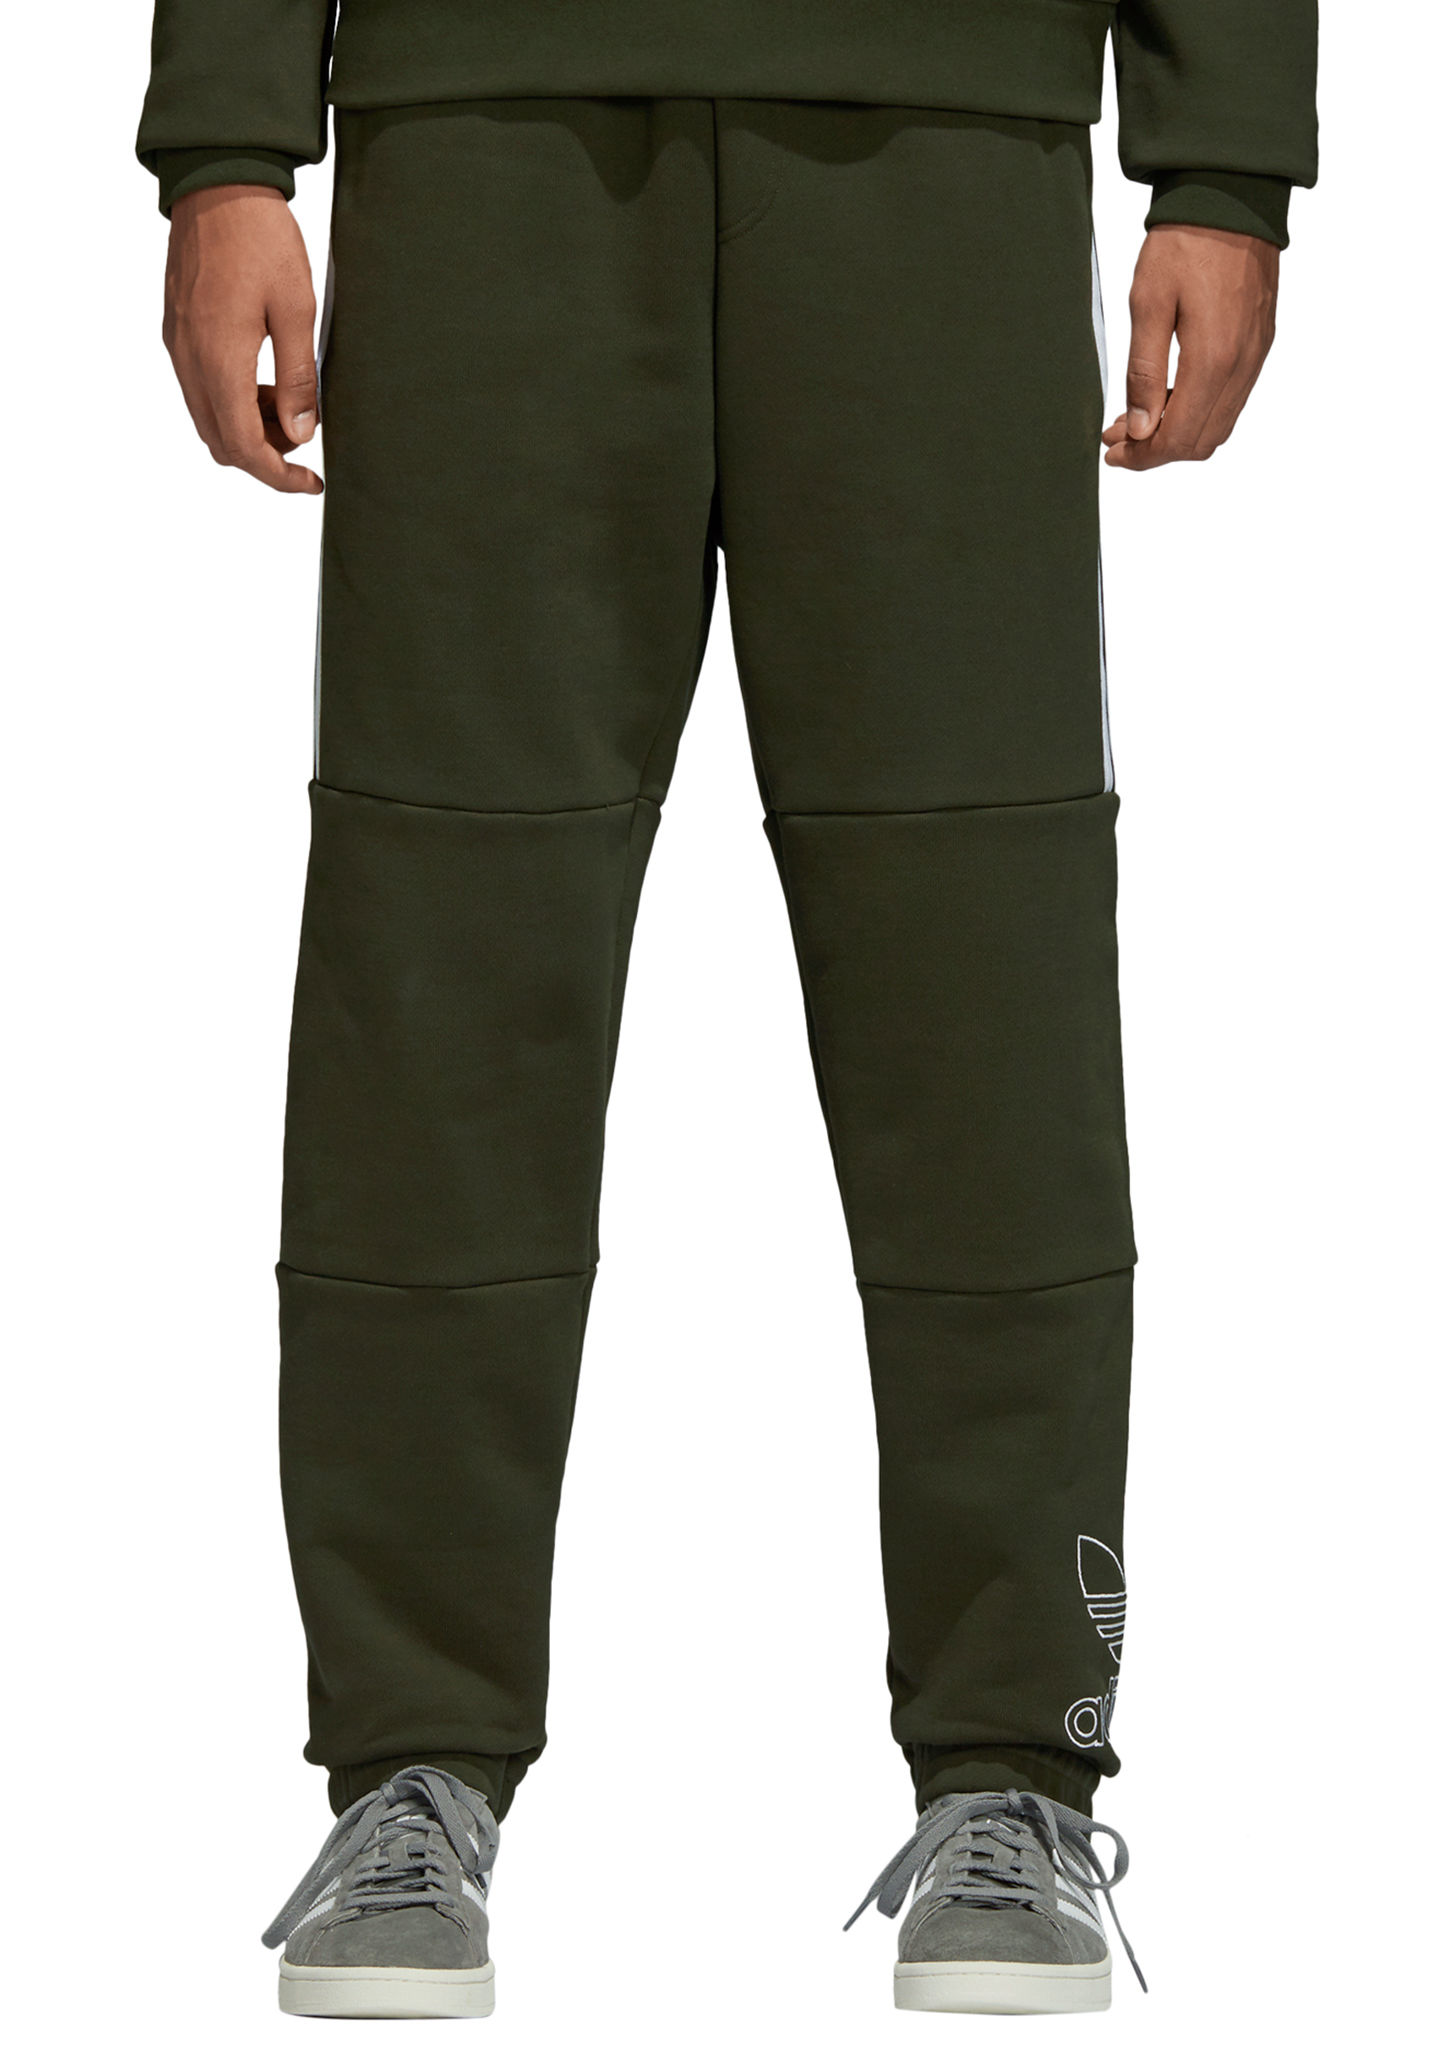 c7e8c4e167e3 ADIDAS ORIGINALS Outline - Trackpants for Men - Green - Planet Sports